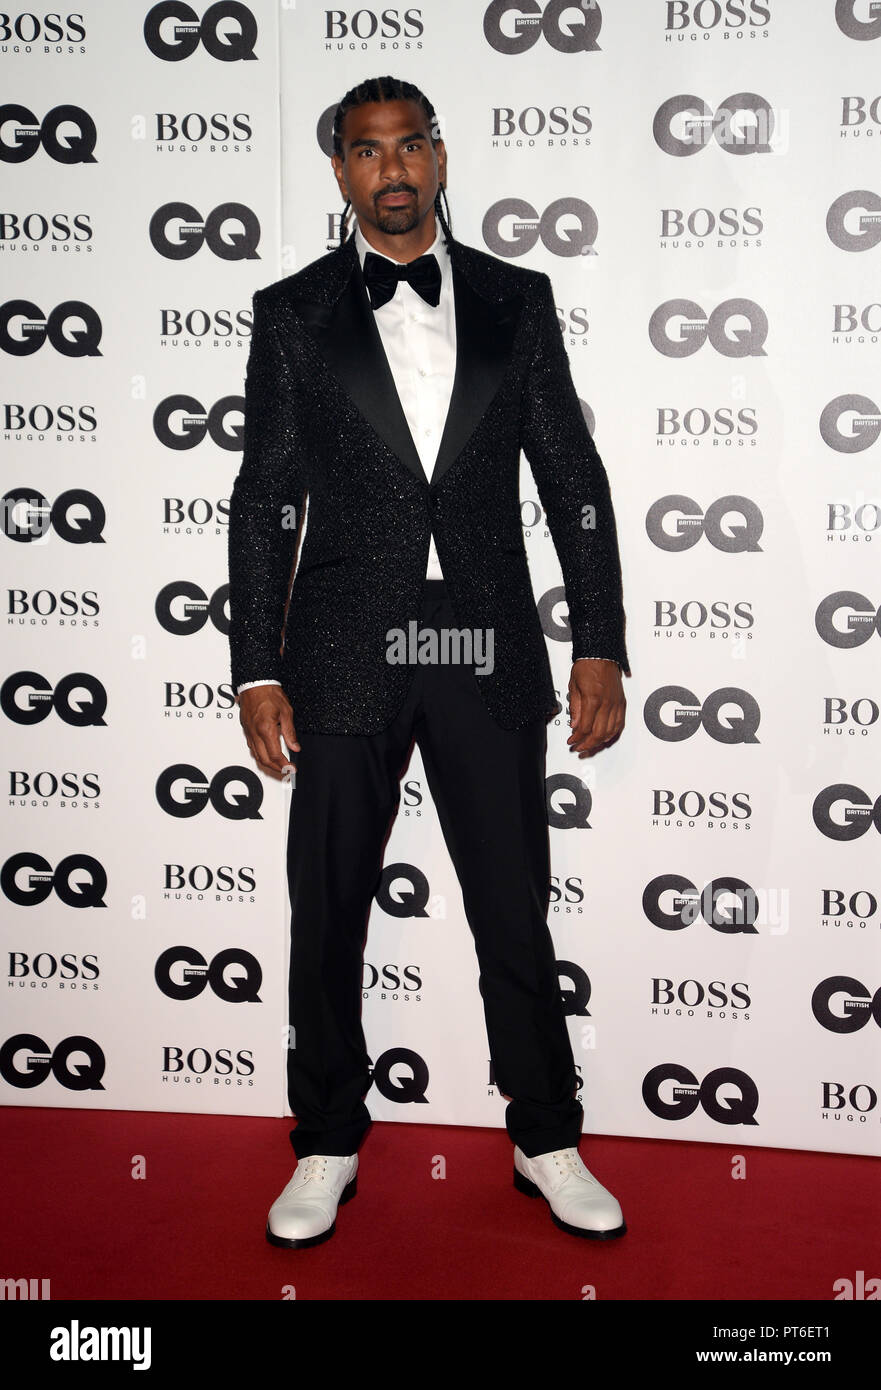 GQ Men Of The Year Awards at The Tate Modern  Featuring: David Haye Where: London, United Kingdom When: 05 Sep 2018 Credit: Tony Oudot/WENN Stock Photo